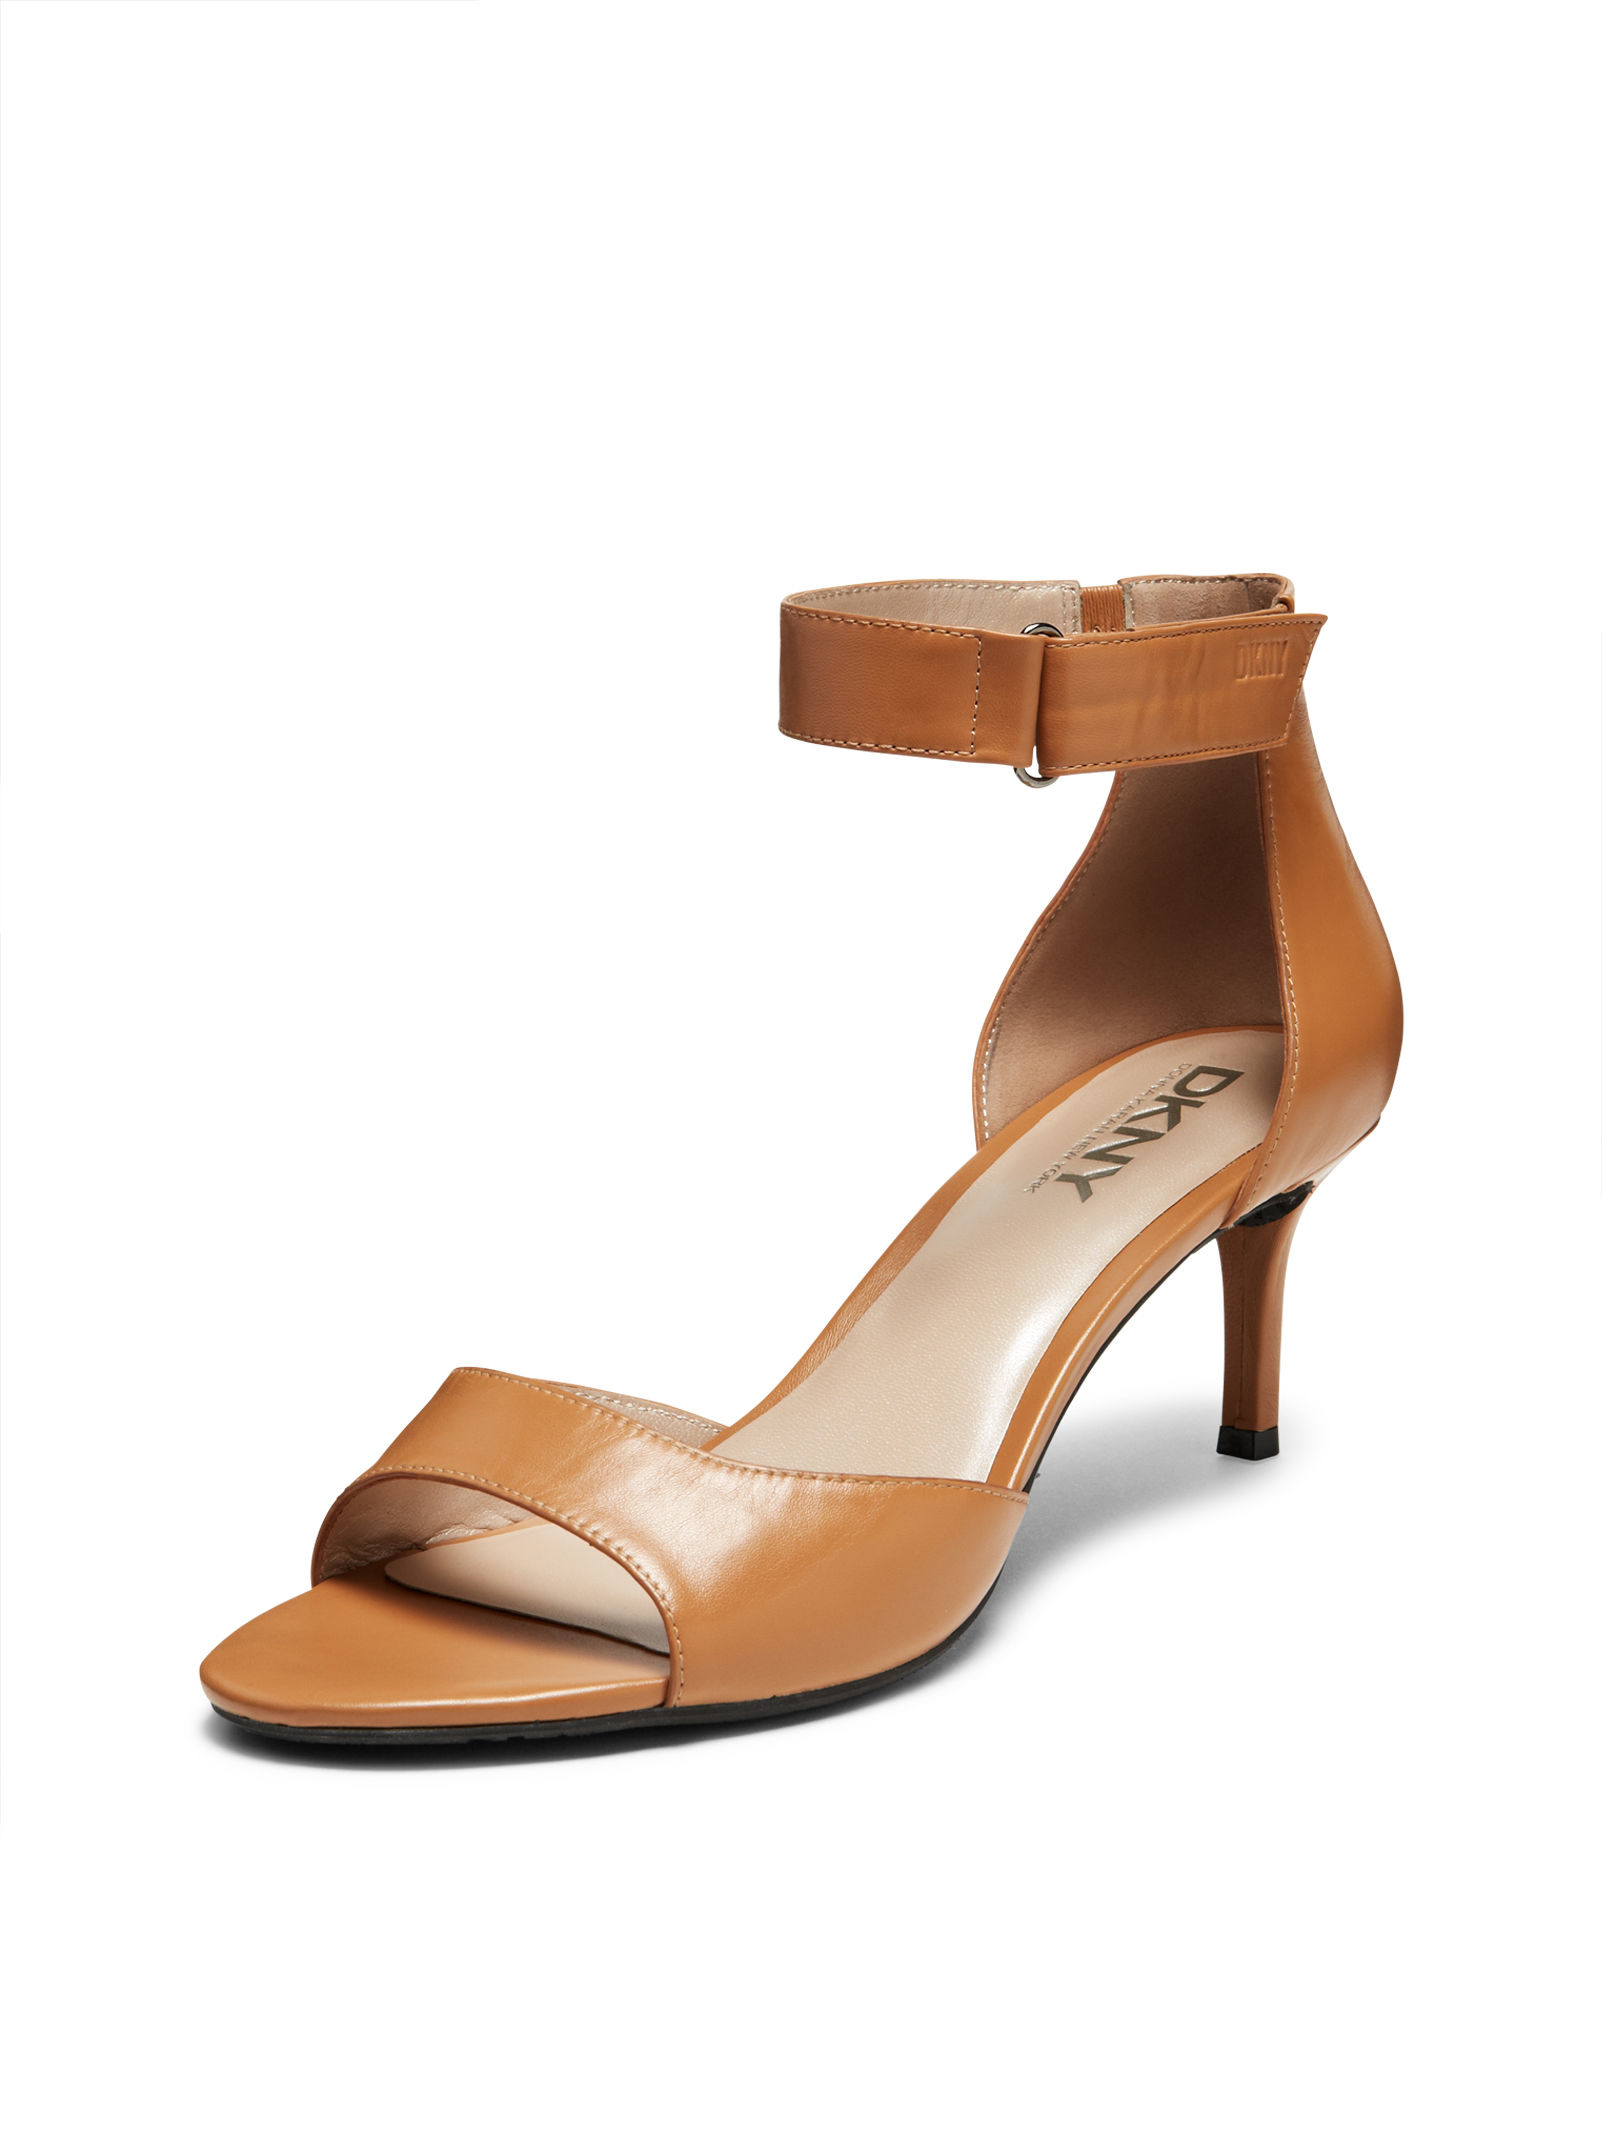 Lyst - Dkny Gianna Kitten Heel Sandal in Brown